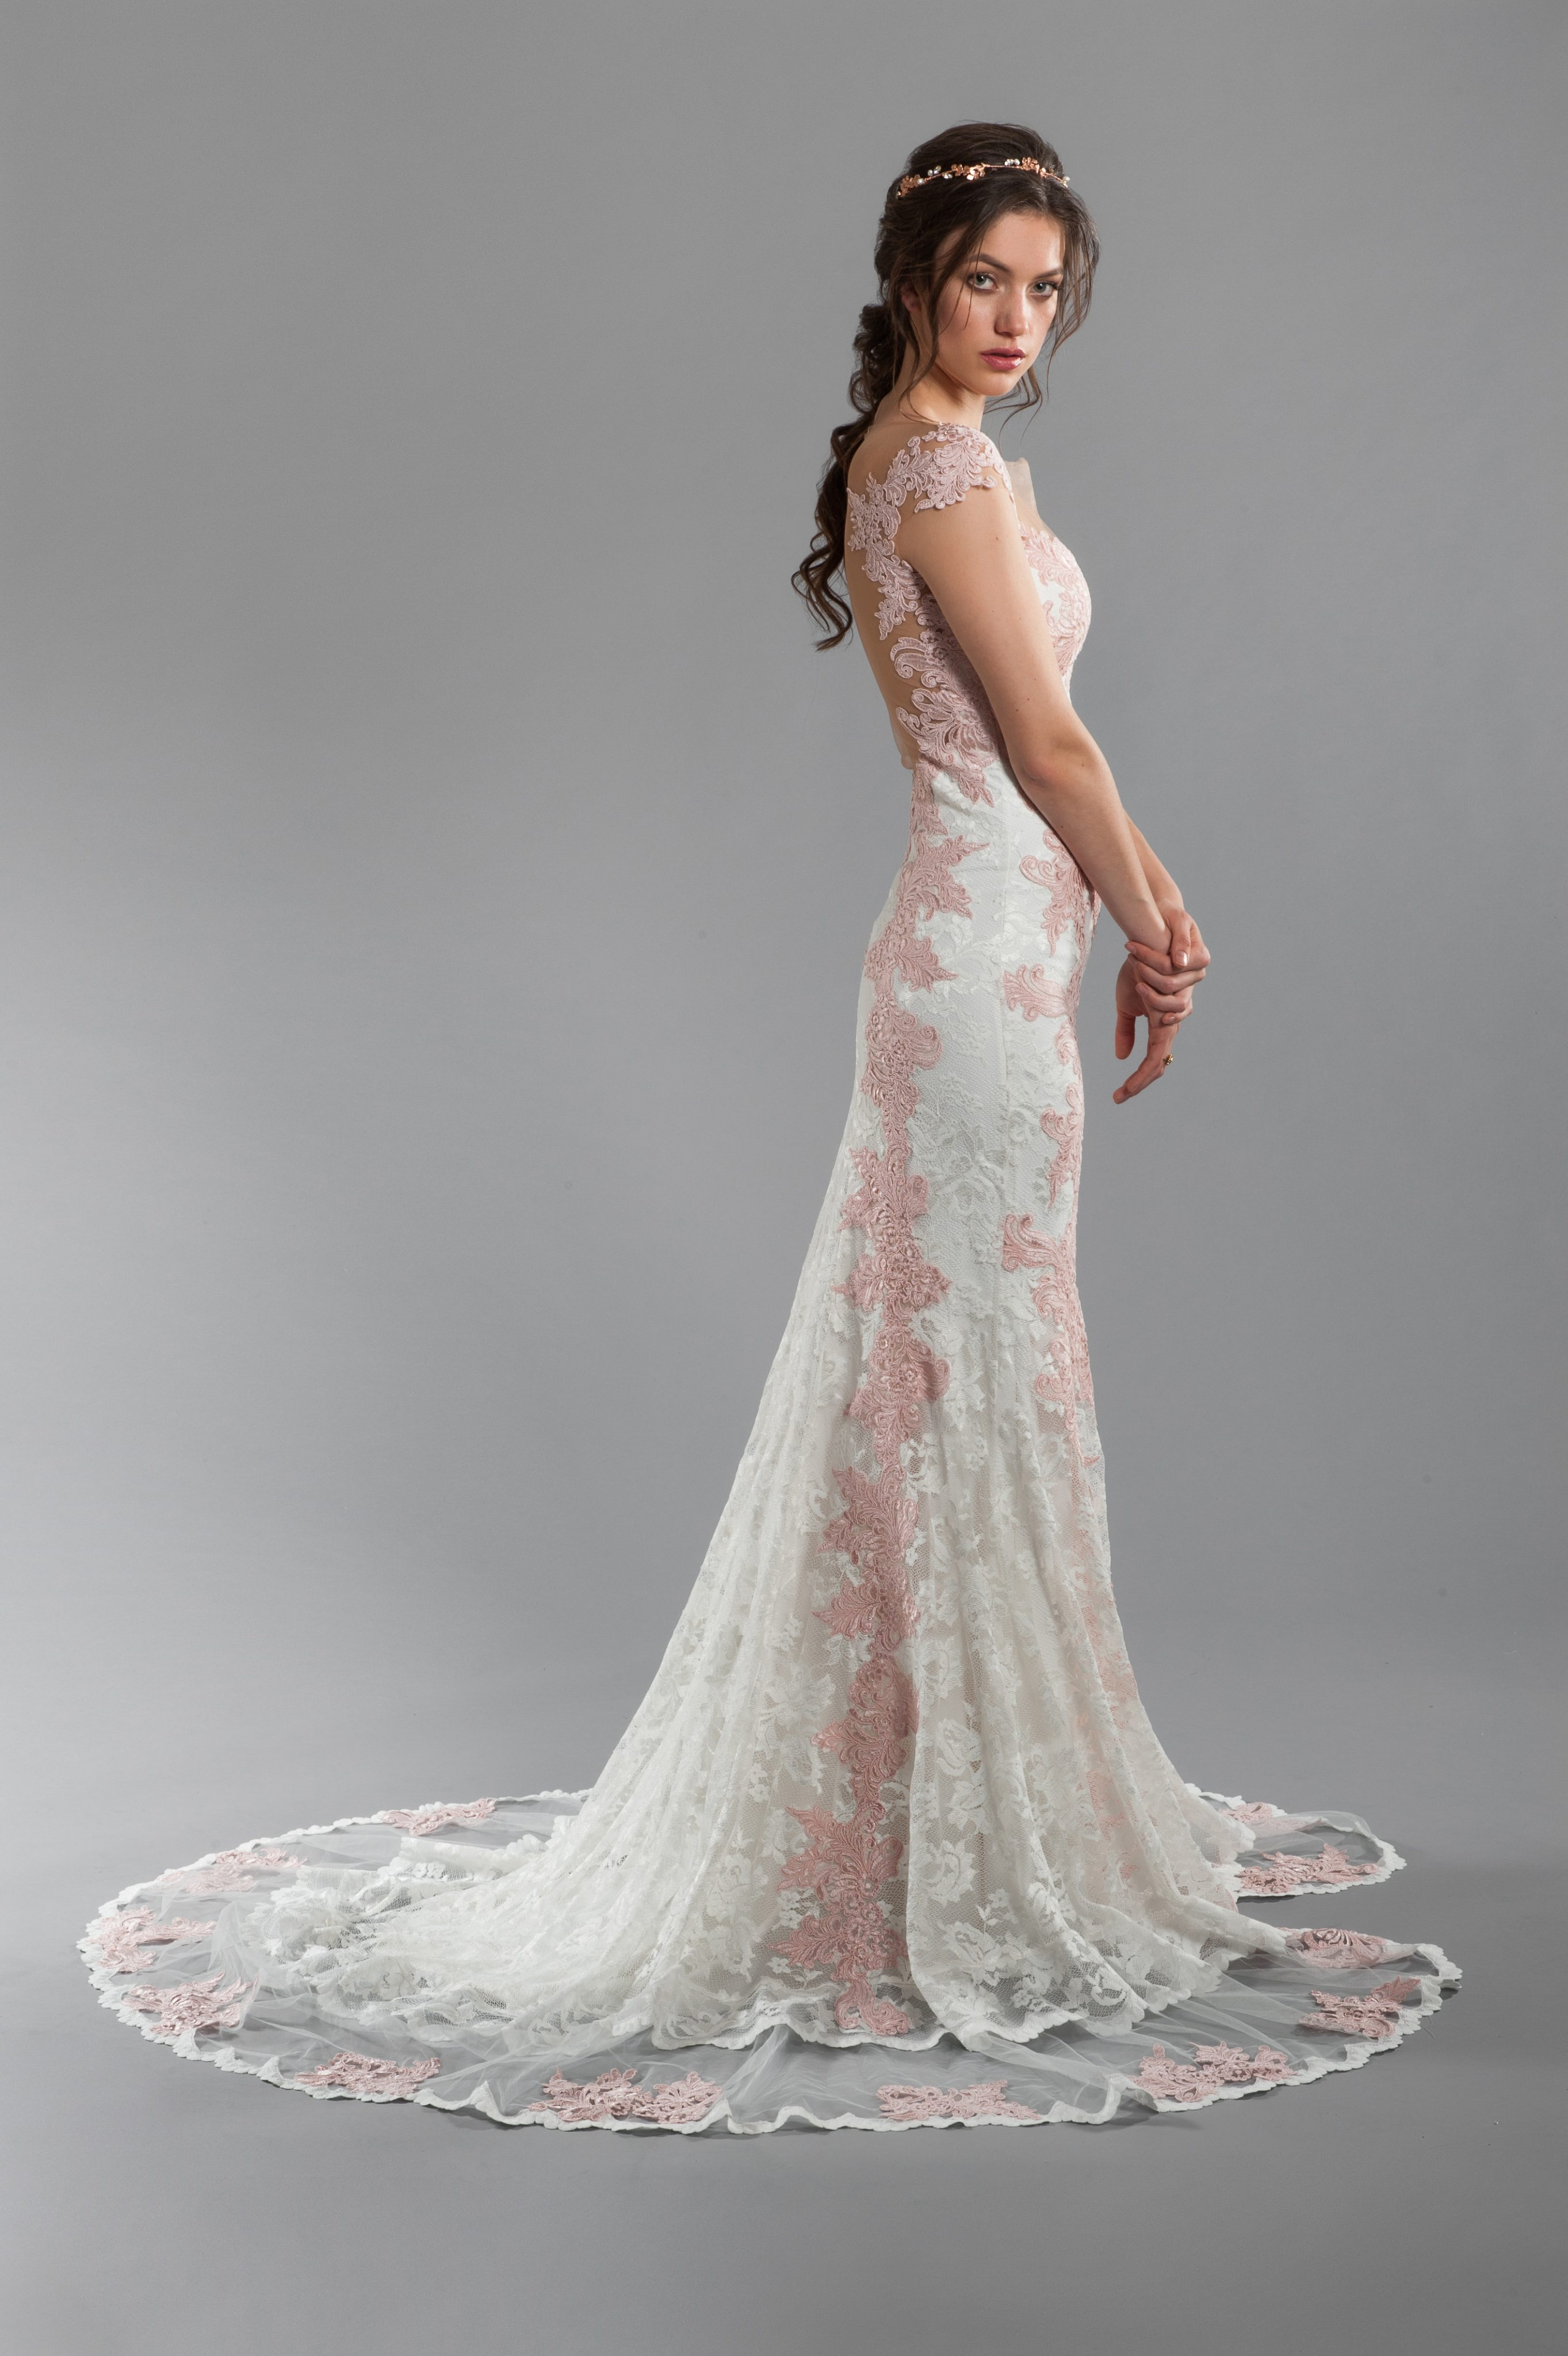 Rose And Ivory Lace Sheath Wedding Dress With Illusion Back And